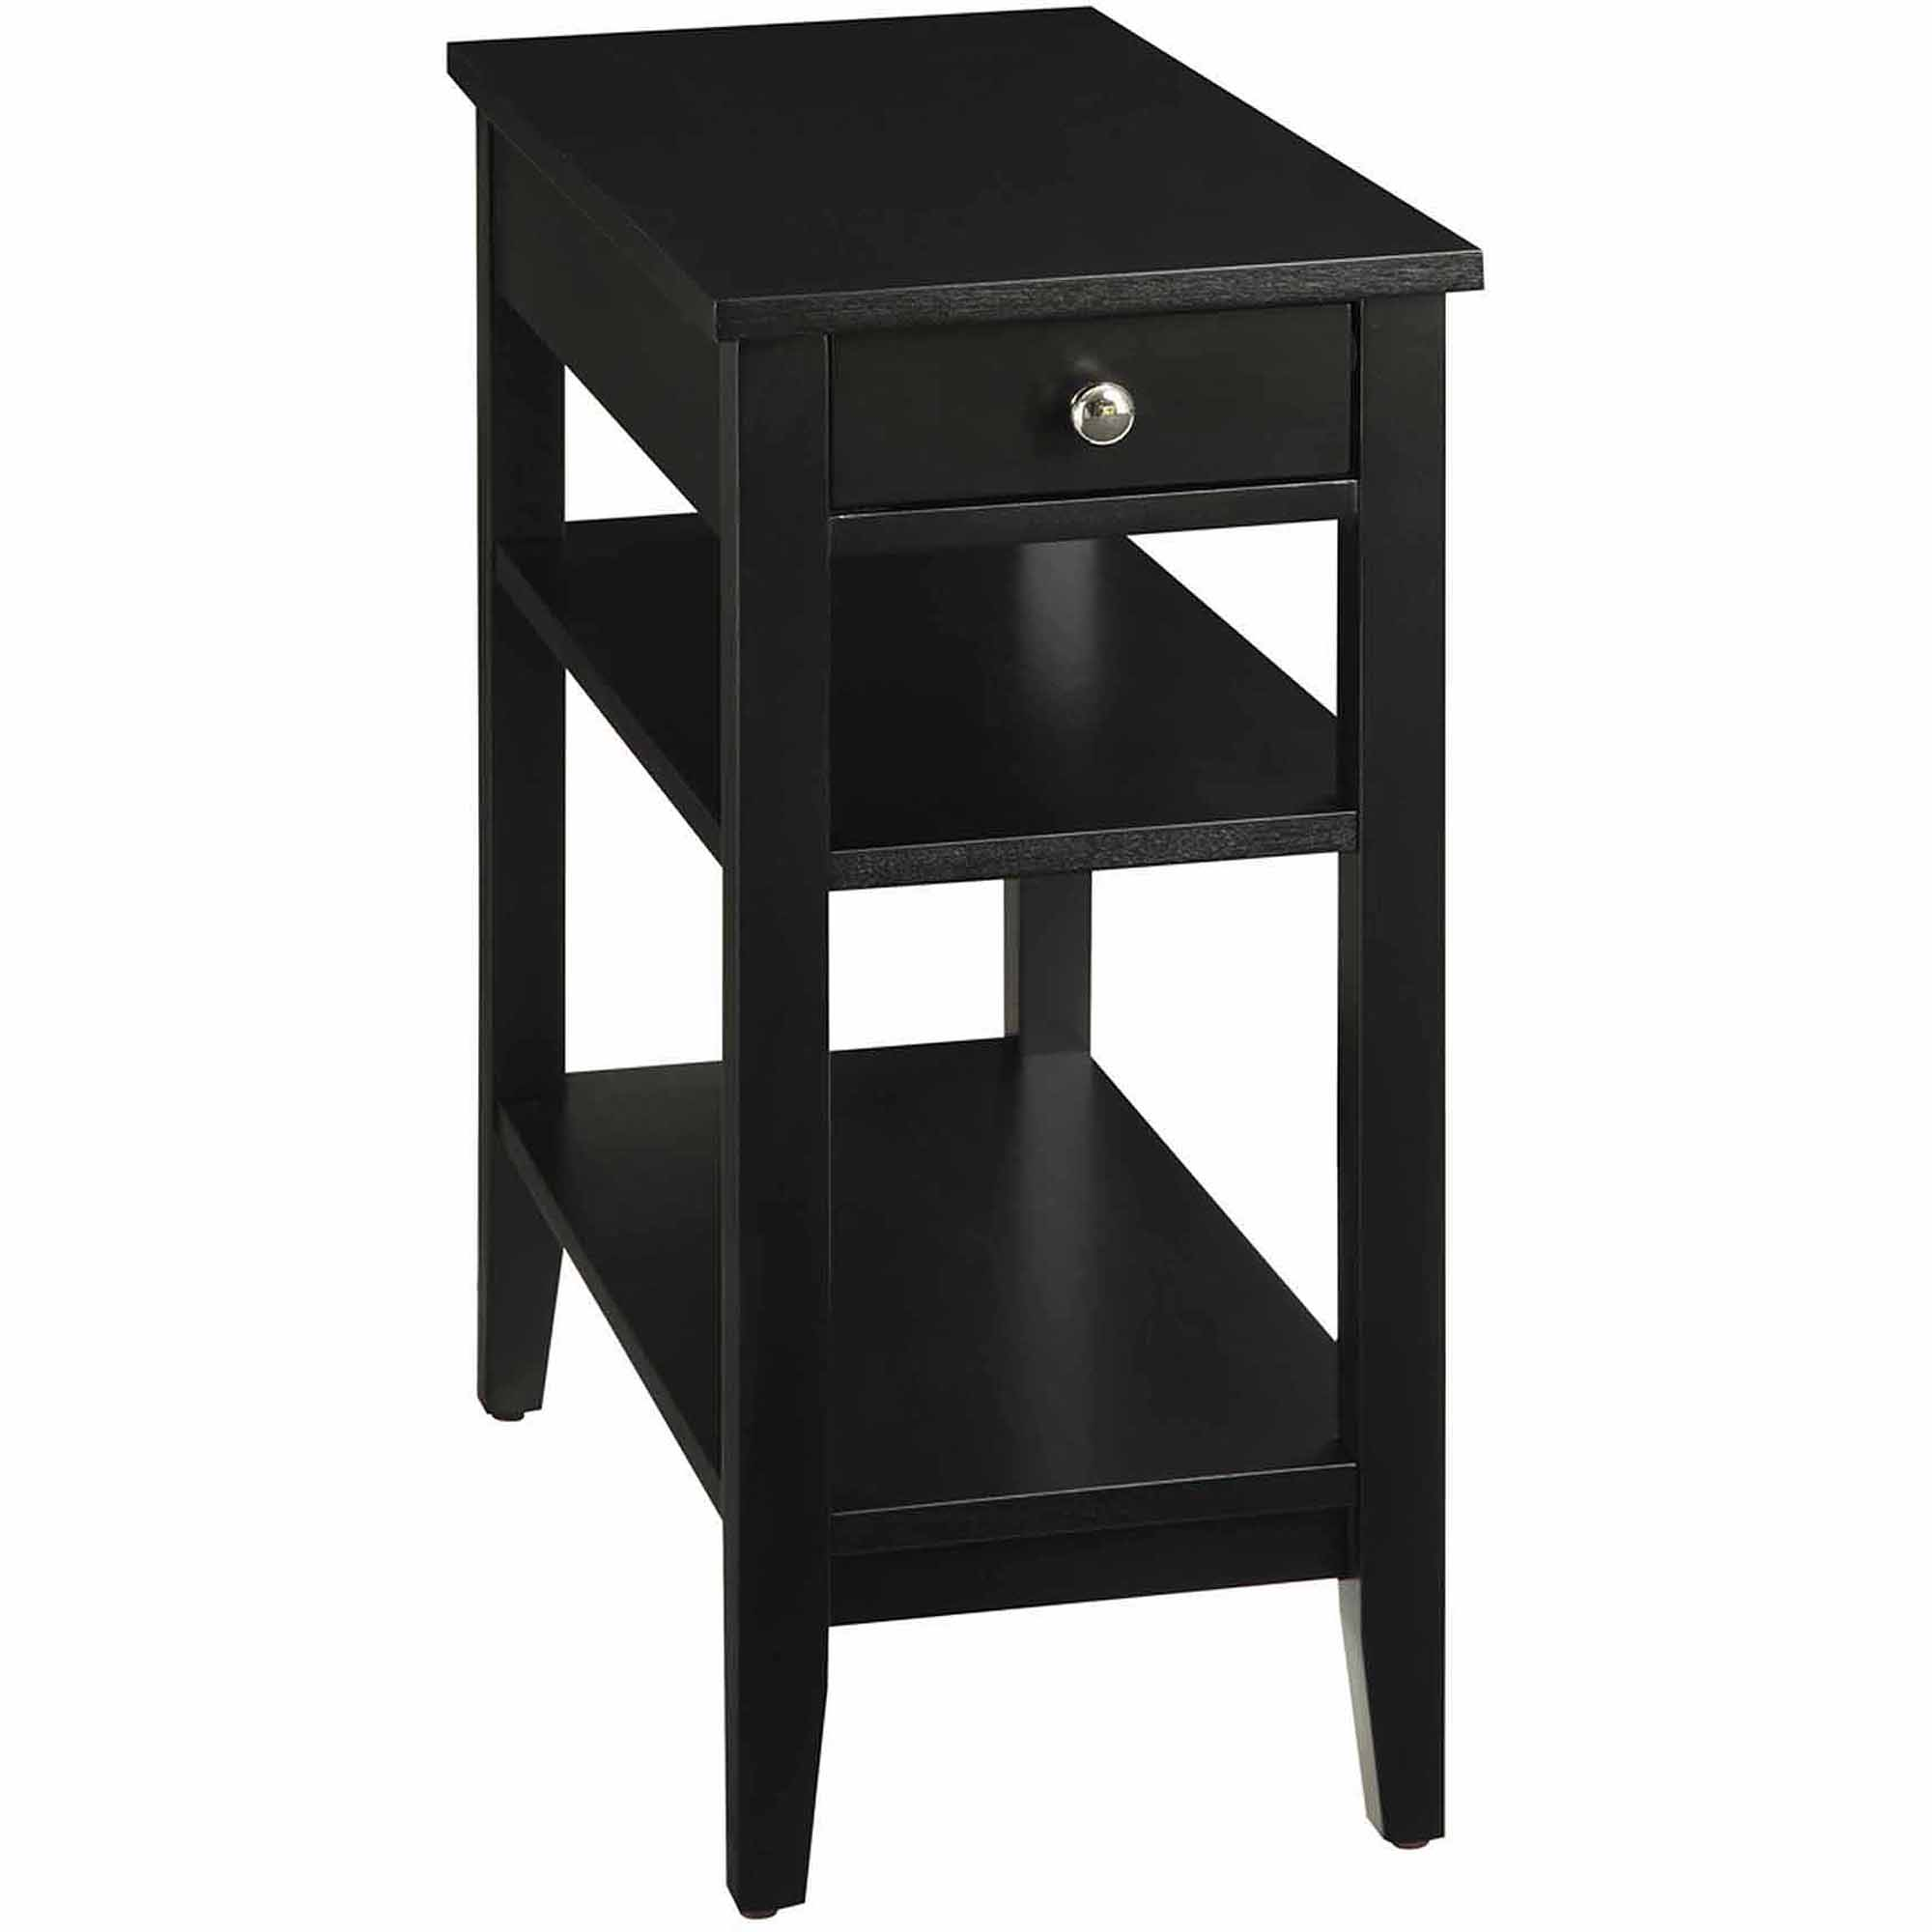 accent tables with drawers tall end table storage best elegant black wood tier drawer for your living room design inch high linens mirrored white night ethan allen drop leaf